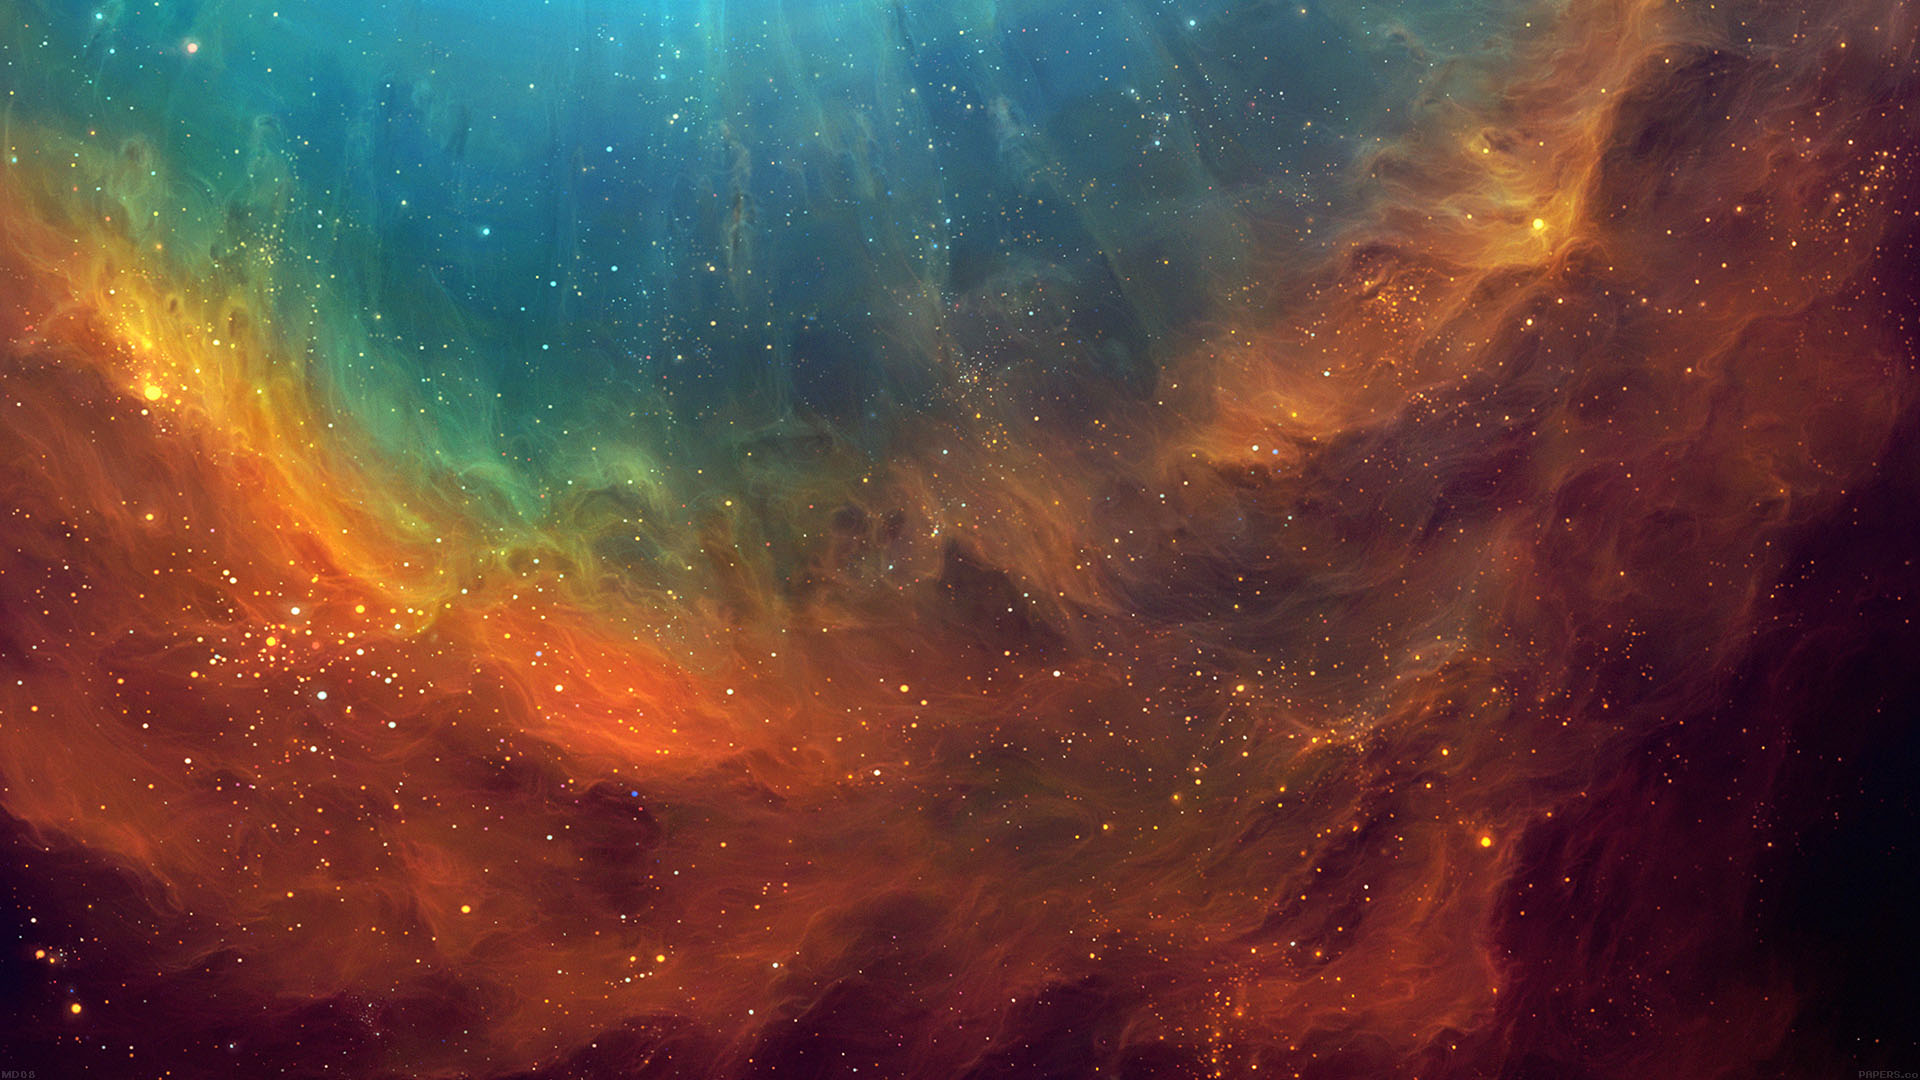 Fall Hd Wallpaper For Mac Md08 Wallpaper Galaxy Eye Space Stars Color Papers Co